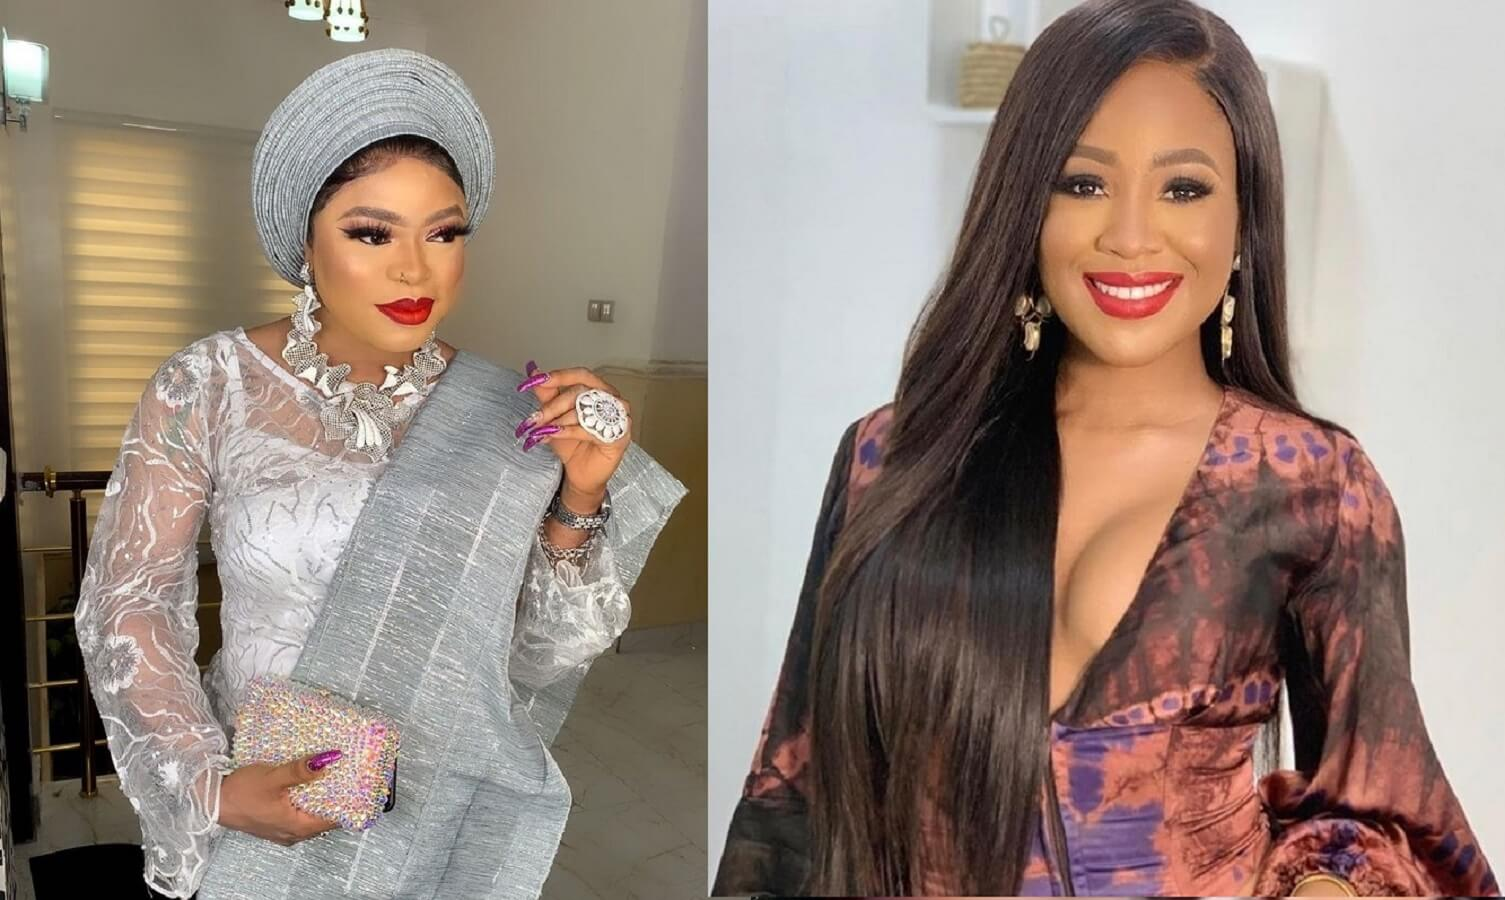 Bobrisky gives Erica N1m, promises her all-expense-paid trip to Dubai